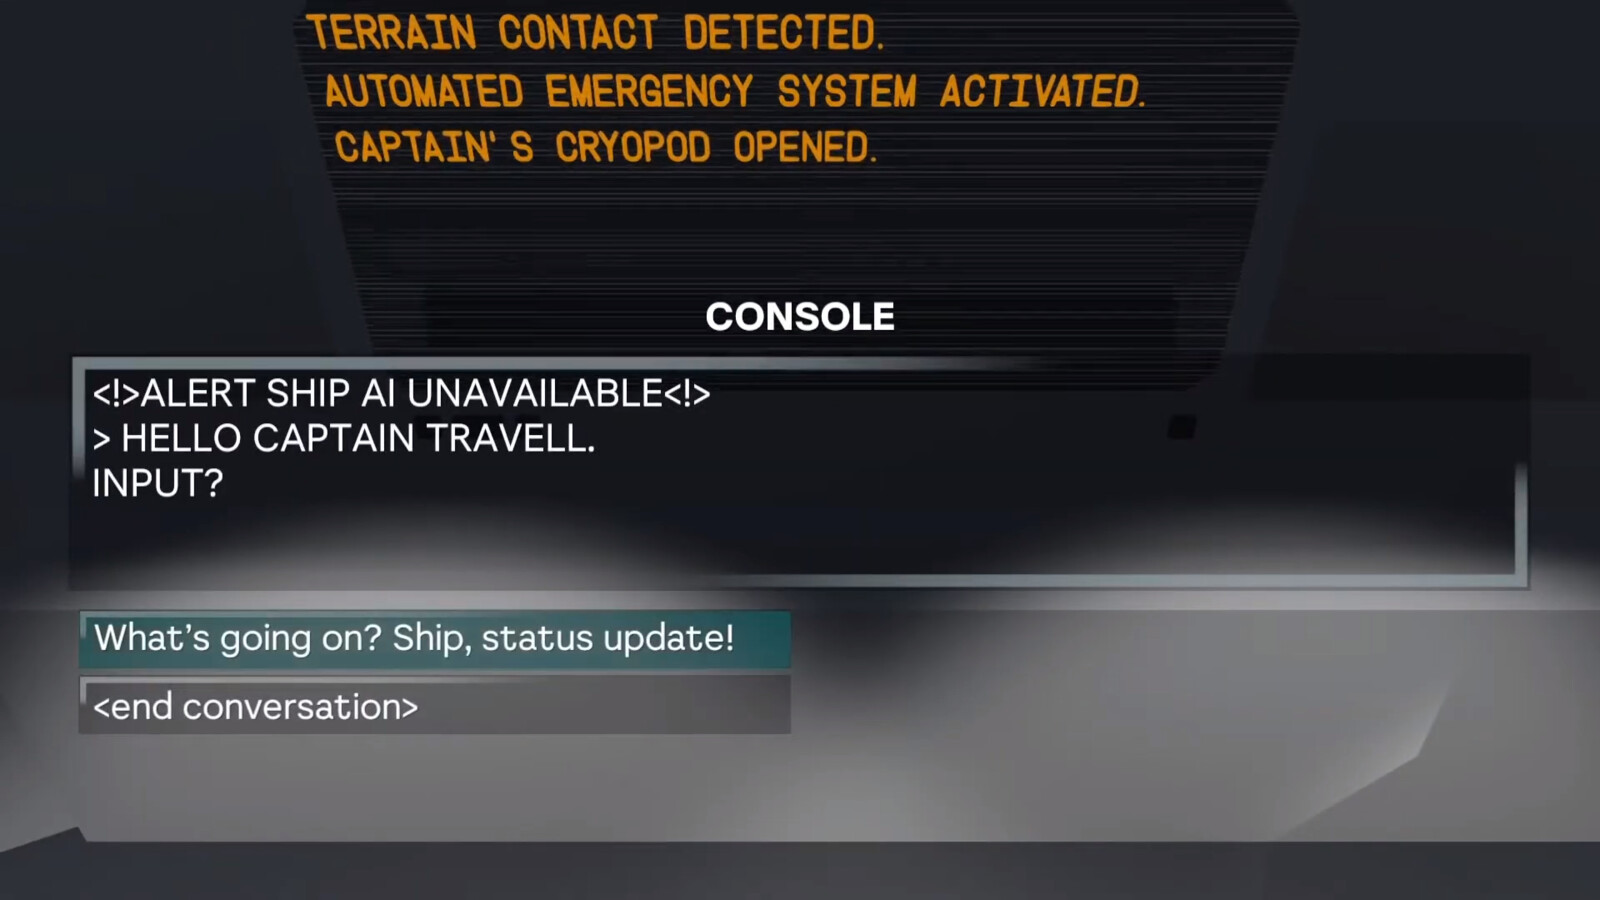 The ship's AI is mysteriously missing.